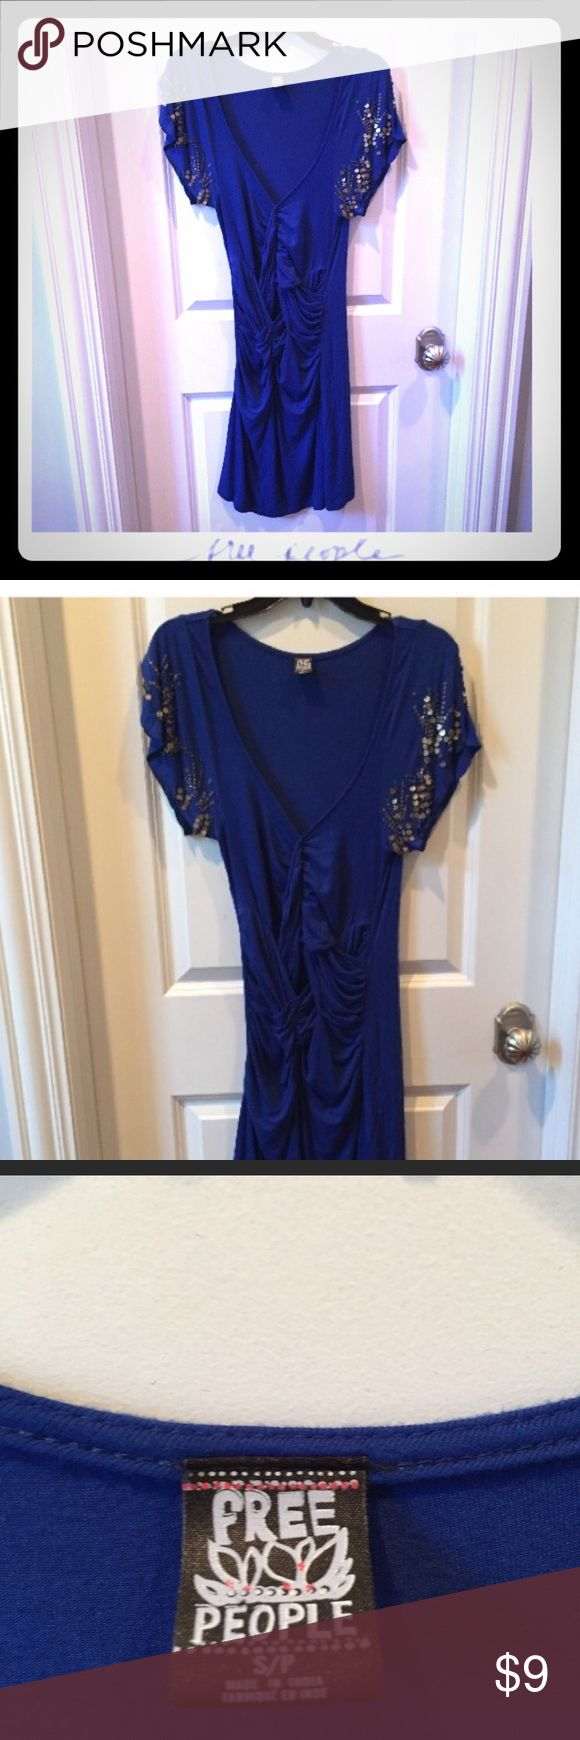 Free People royal blue sequin dress size S Free People size Small, slip-on style royal blue dress with embellished short sleeves and ruffle pattern across waist. Dress is gently worn; Sleeves missing some sequins (unnoticeable); free of piling, stains, holes, etc... Free People Dresses